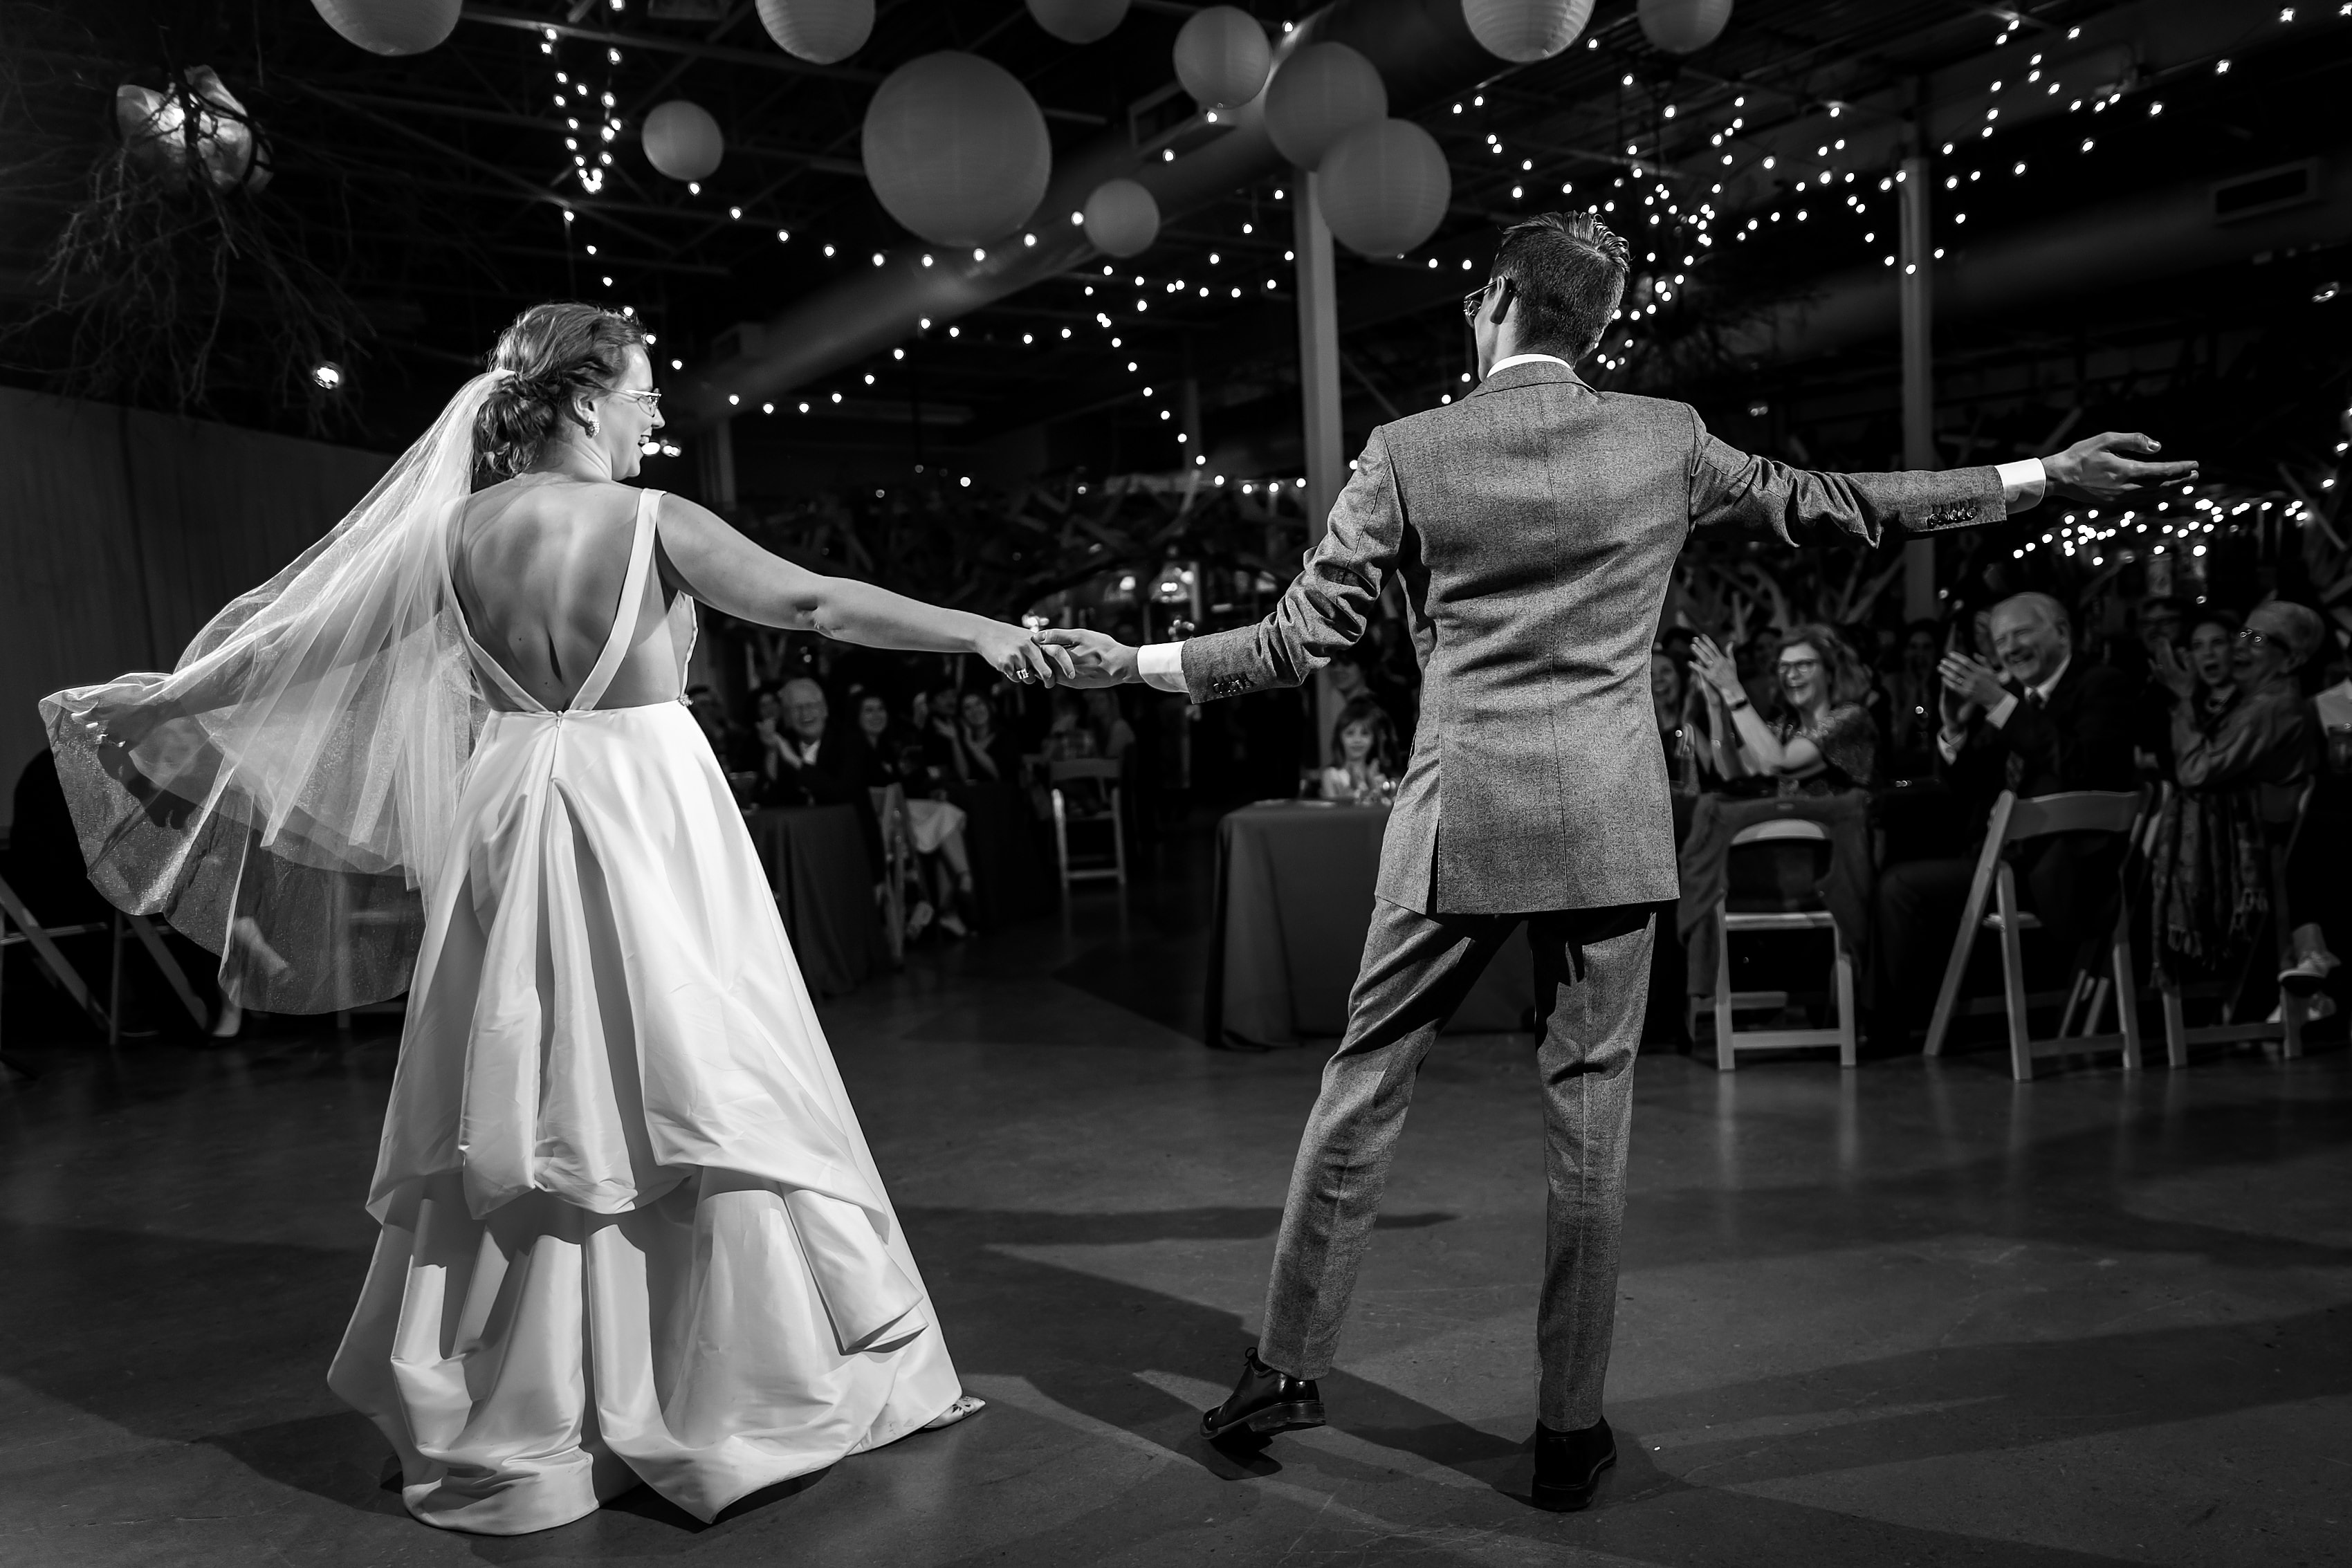 black and white first dance with bride and groom doing choreographed spin to audience during wedding reception at Rust Belt Market in downtown Ferndale, Michigan